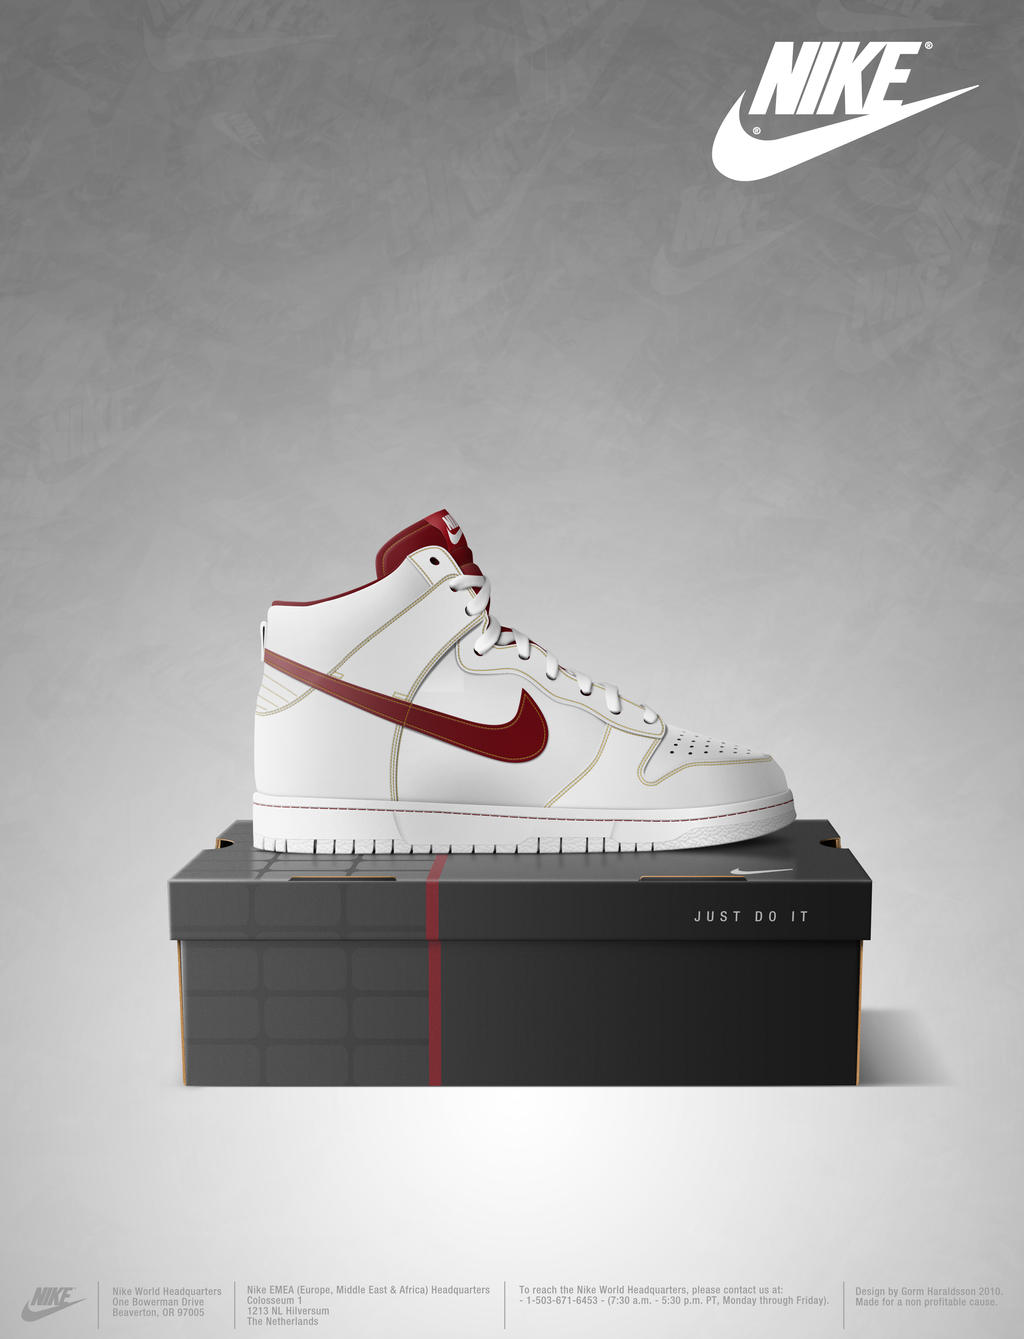 nike powerpoint template images - templates example free download, Presentation templates